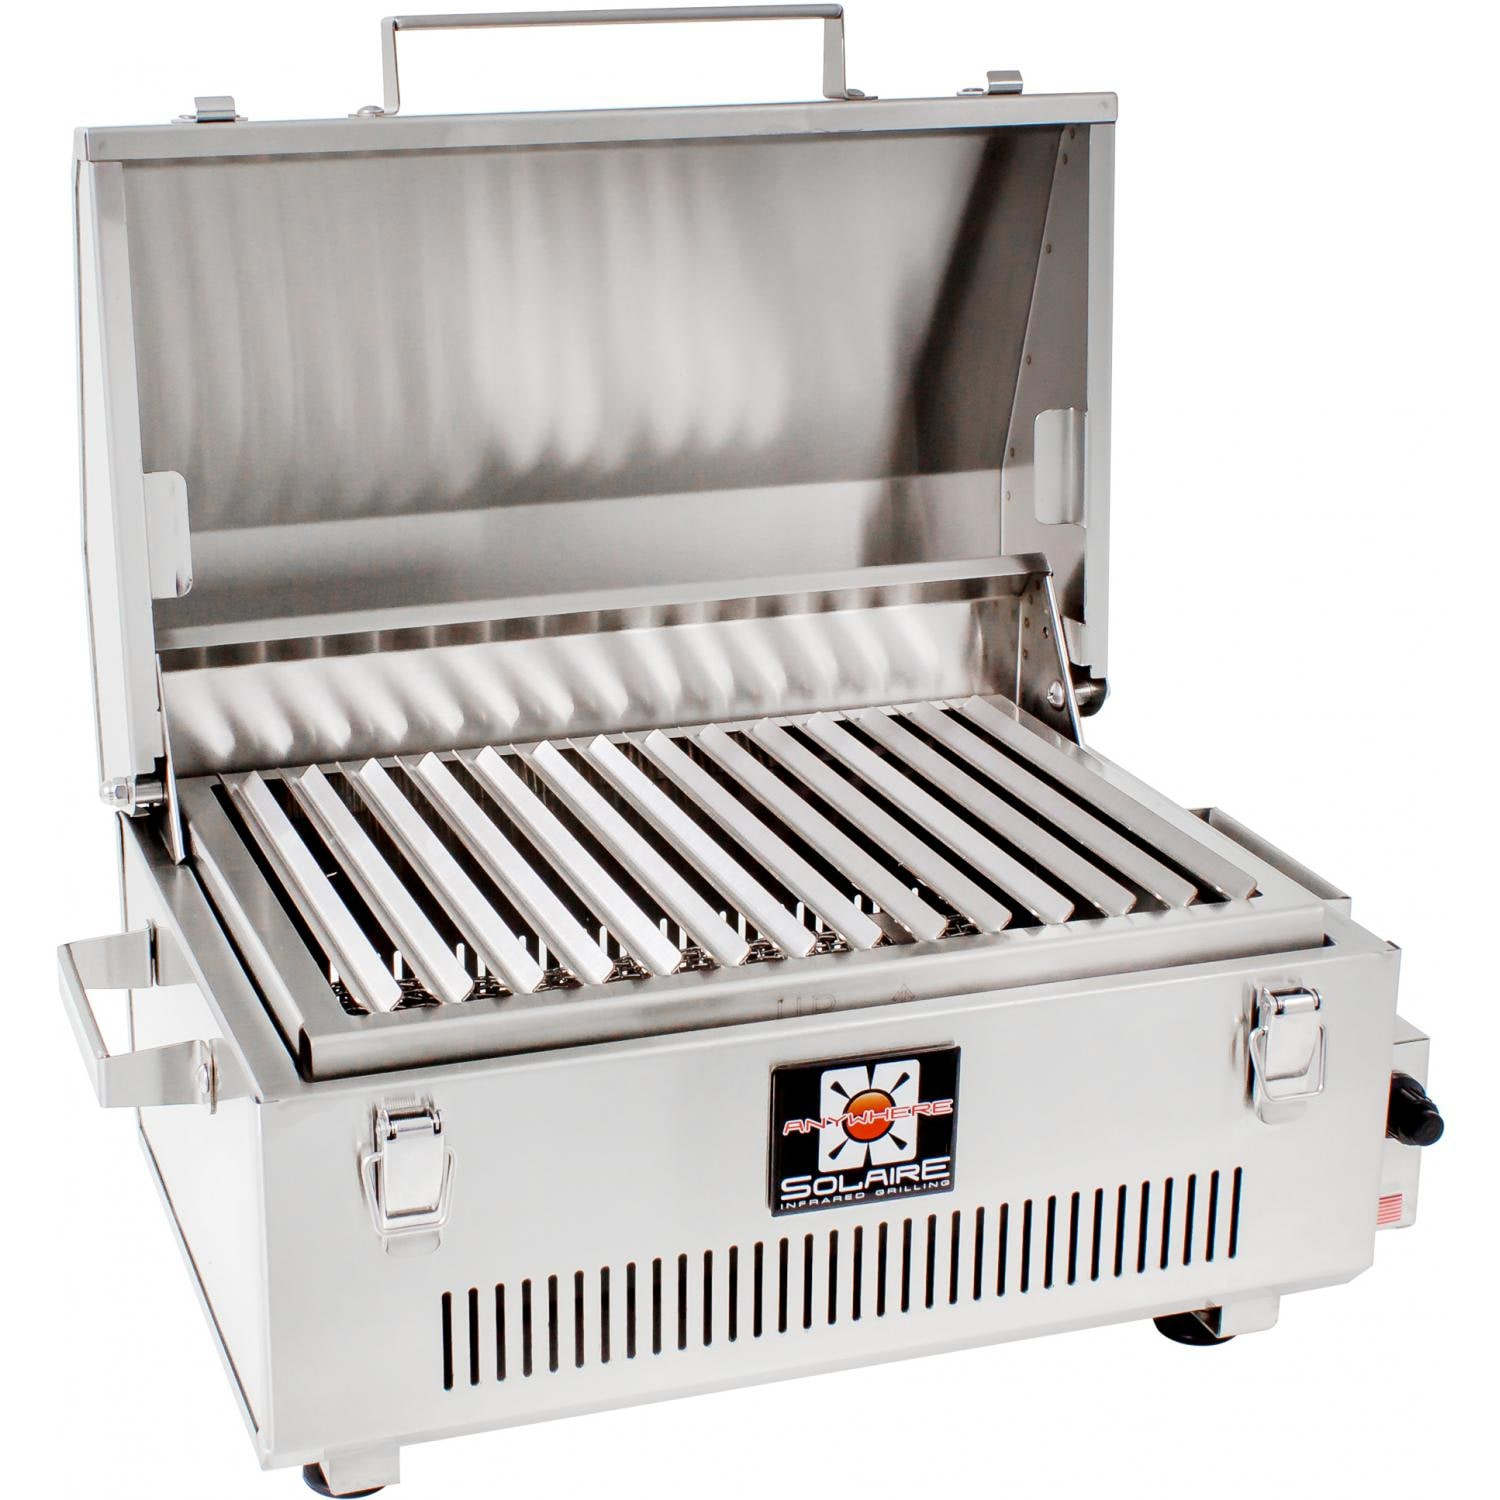 Solaire Gas Grills Go Anywhere 316 Grade Stainless Steel Portable Infrared  Propane Gas Grill   Hood Open Angled View